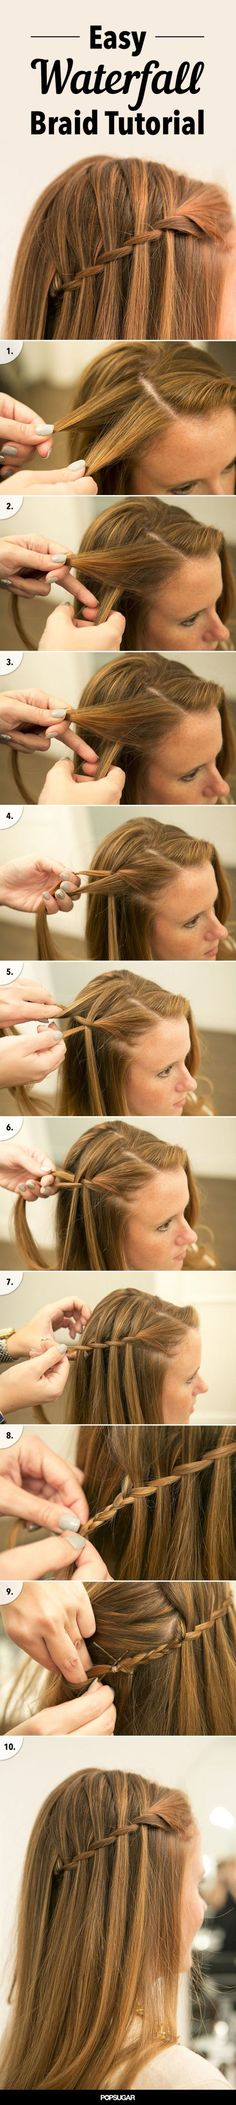 a waterfall braid tutorial